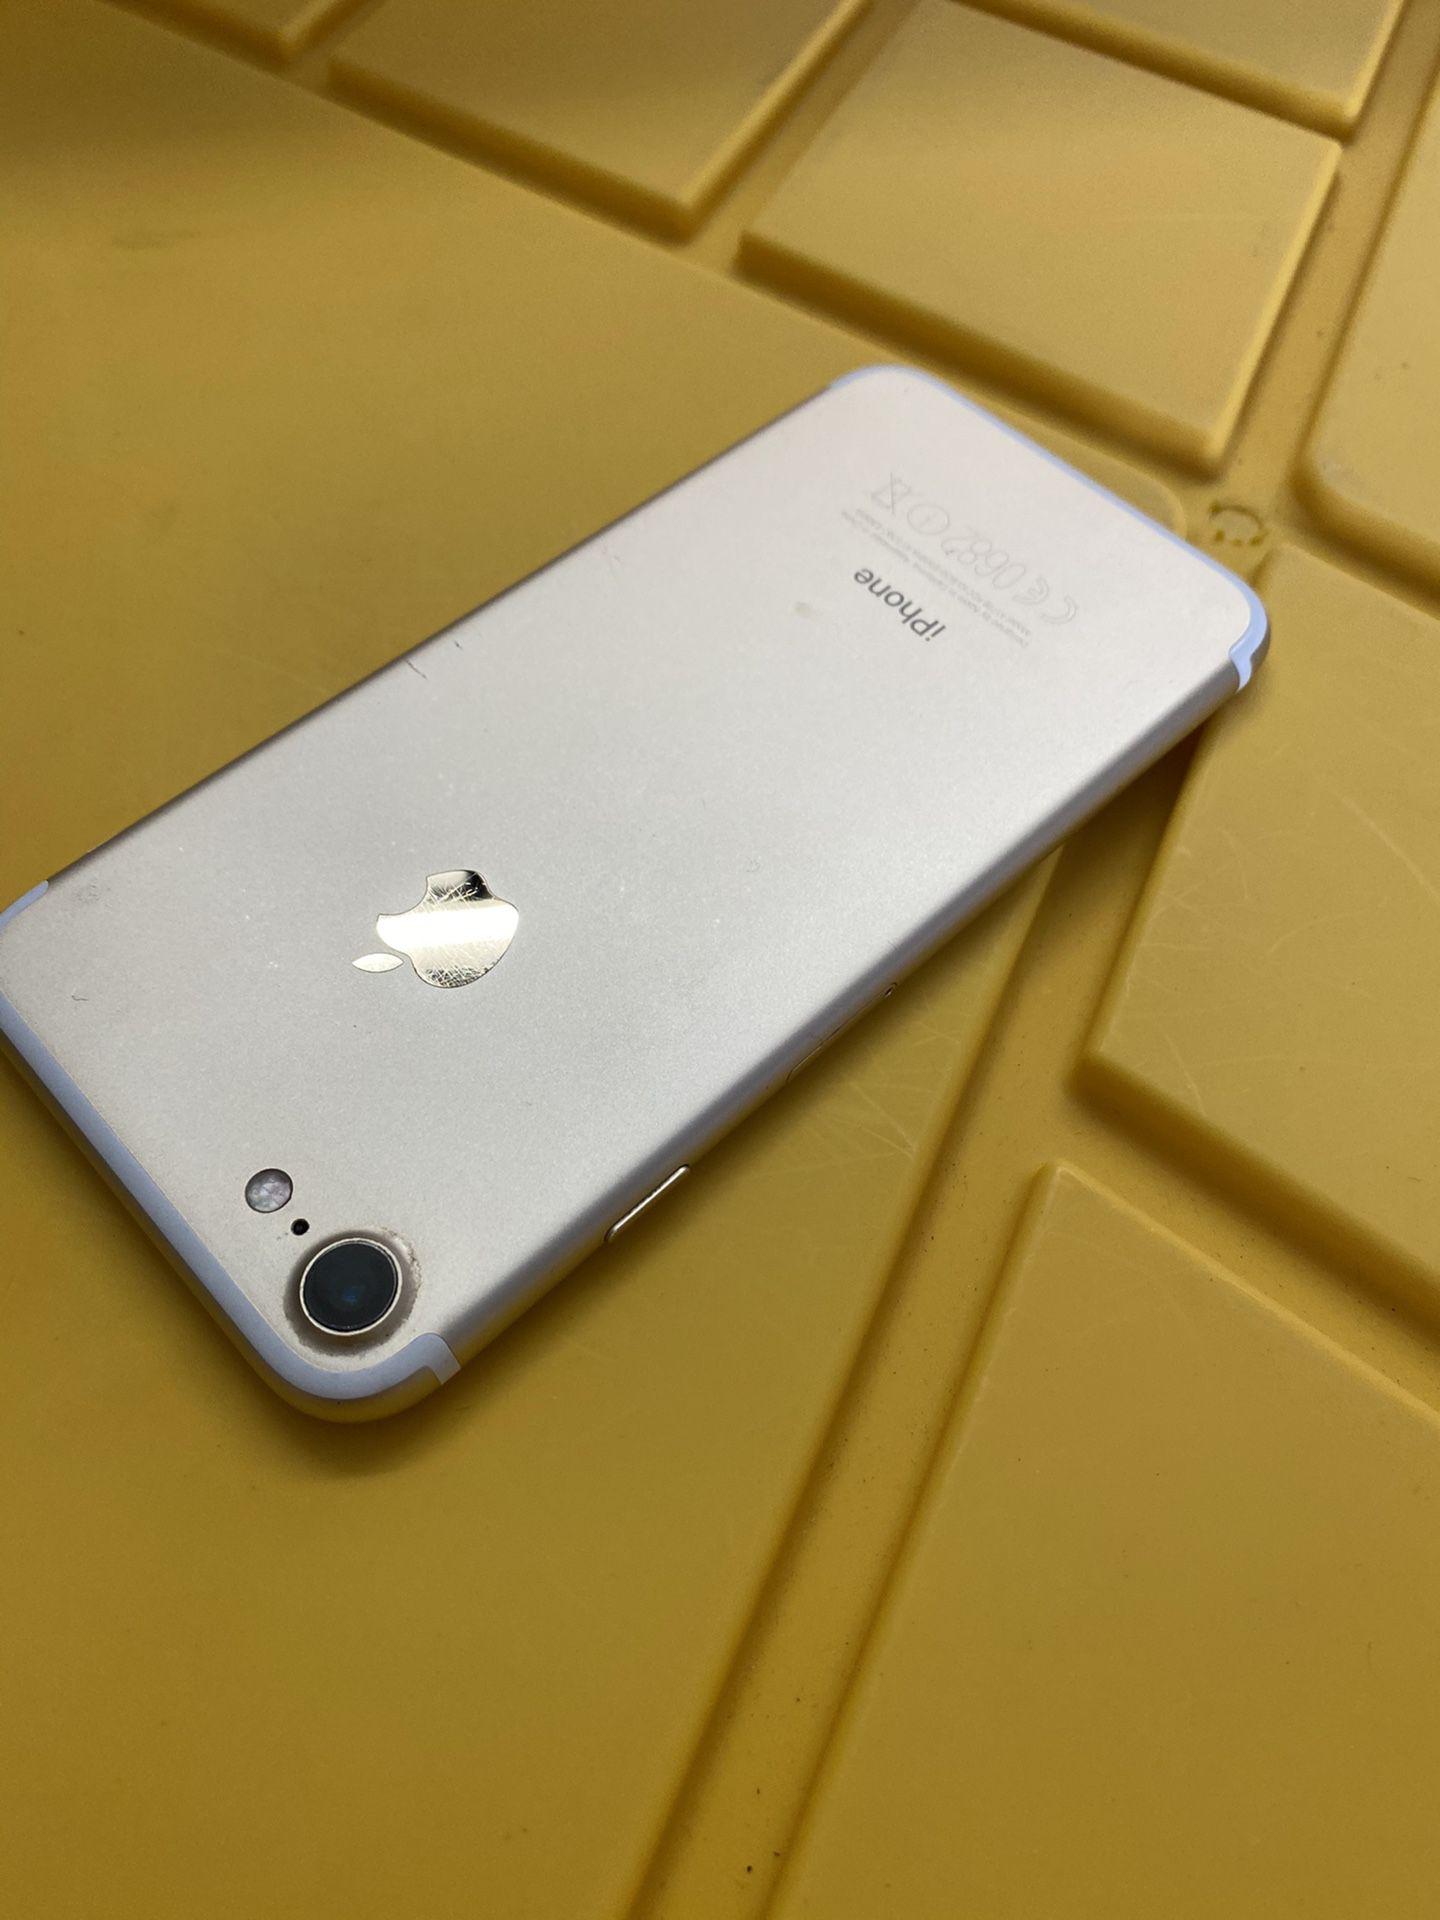 iPhone 7 128 GB silver factory unlocked any carrier